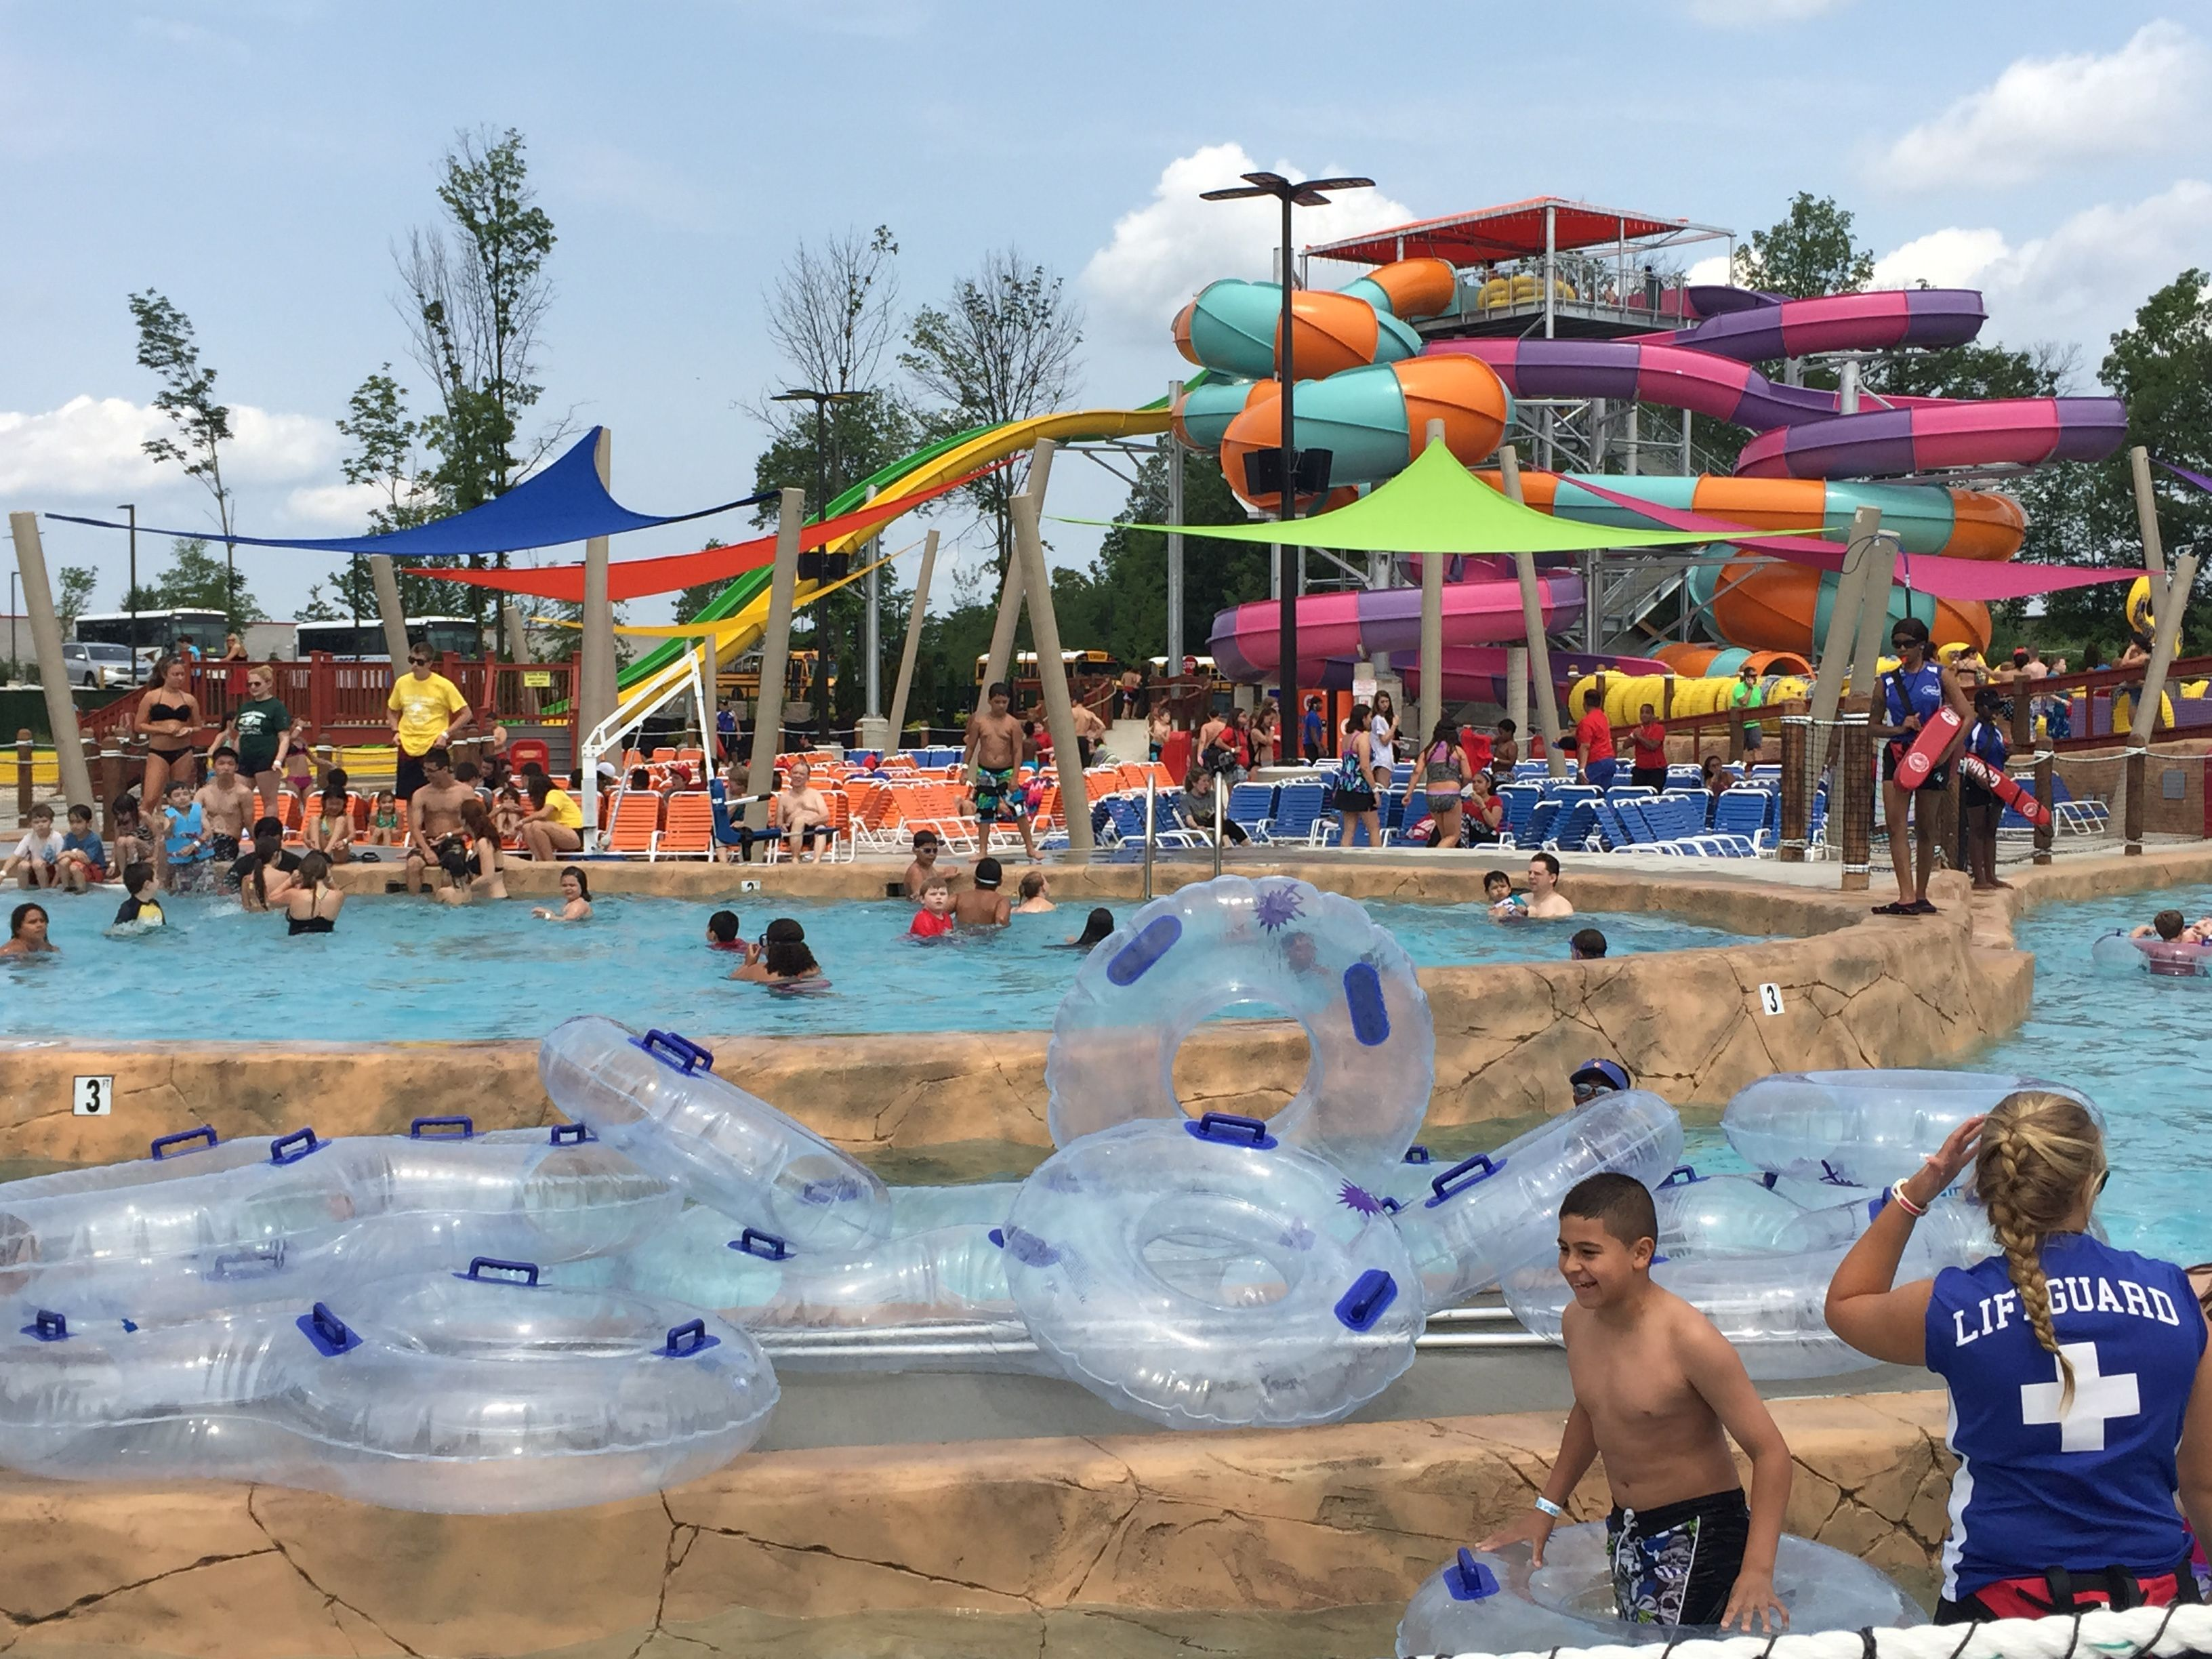 Things To Do In Elizabeth Nj For Kids